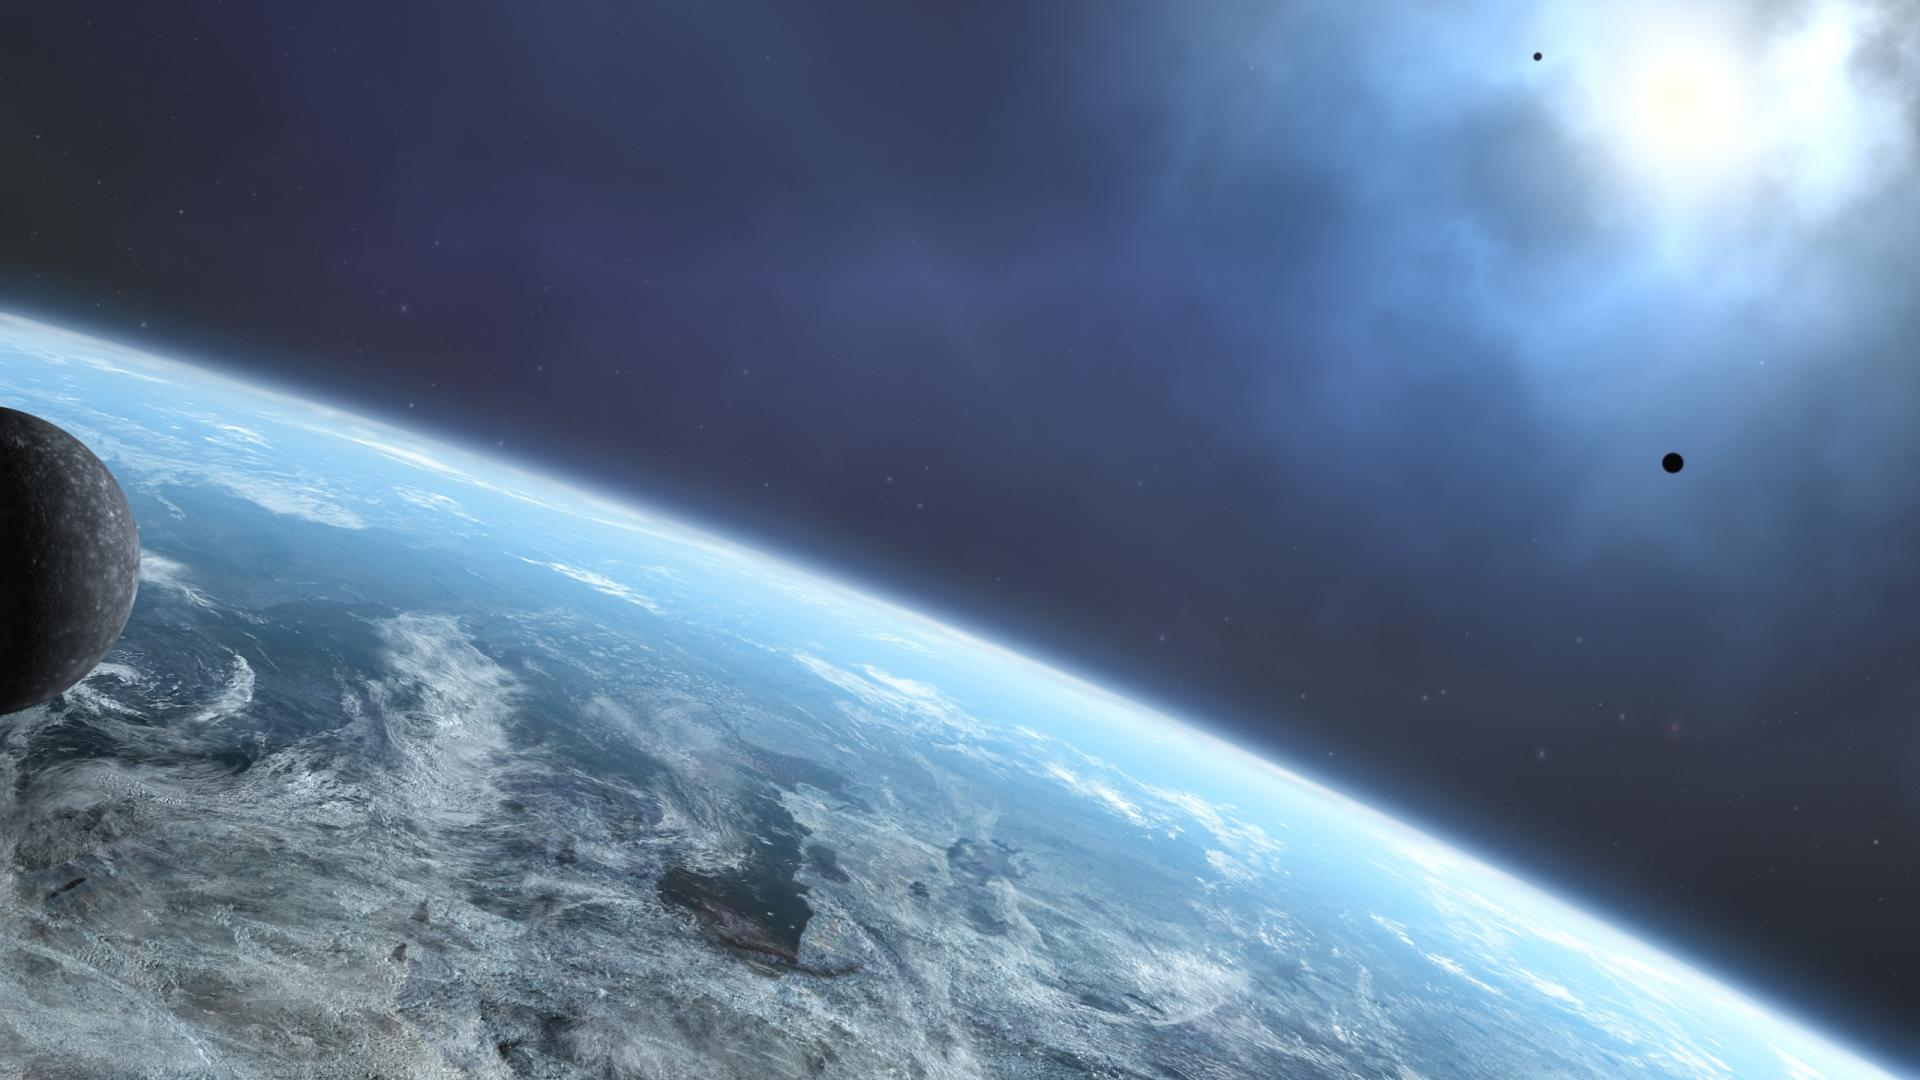 earth space planets 1920x1080